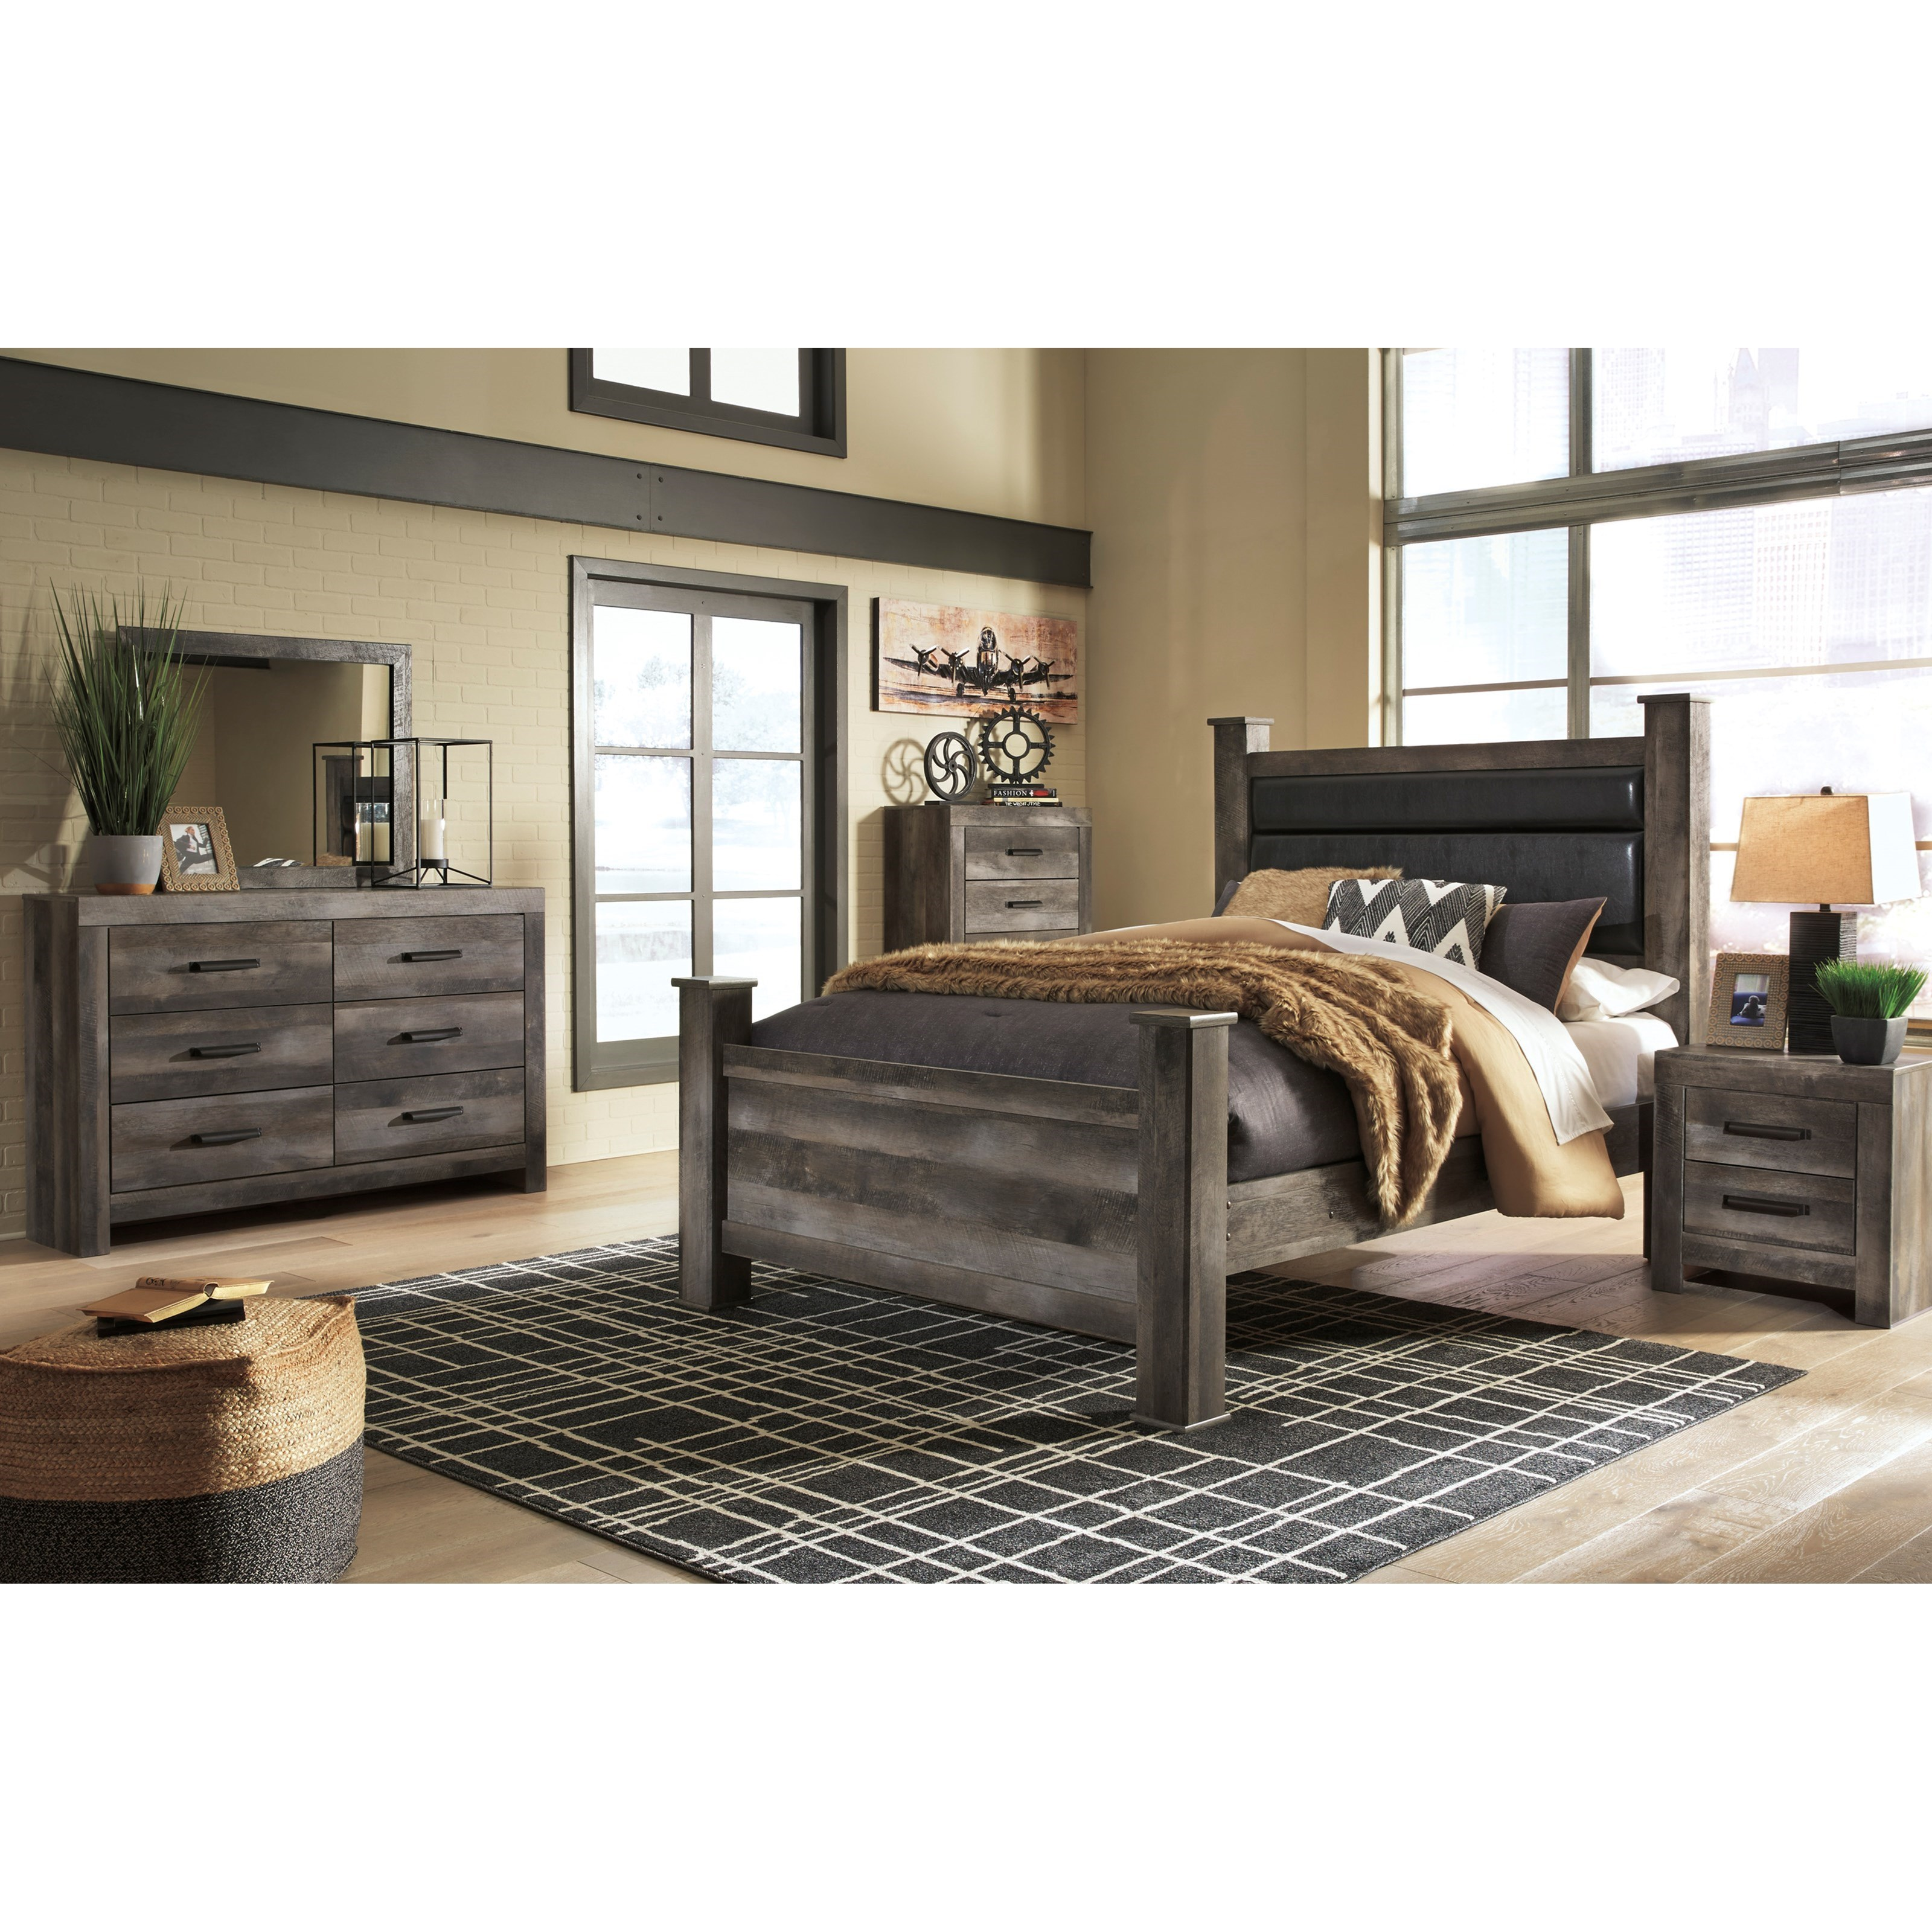 Wynnlow Queen Bedroom Group by Signature Design by Ashley at Northeast Factory Direct